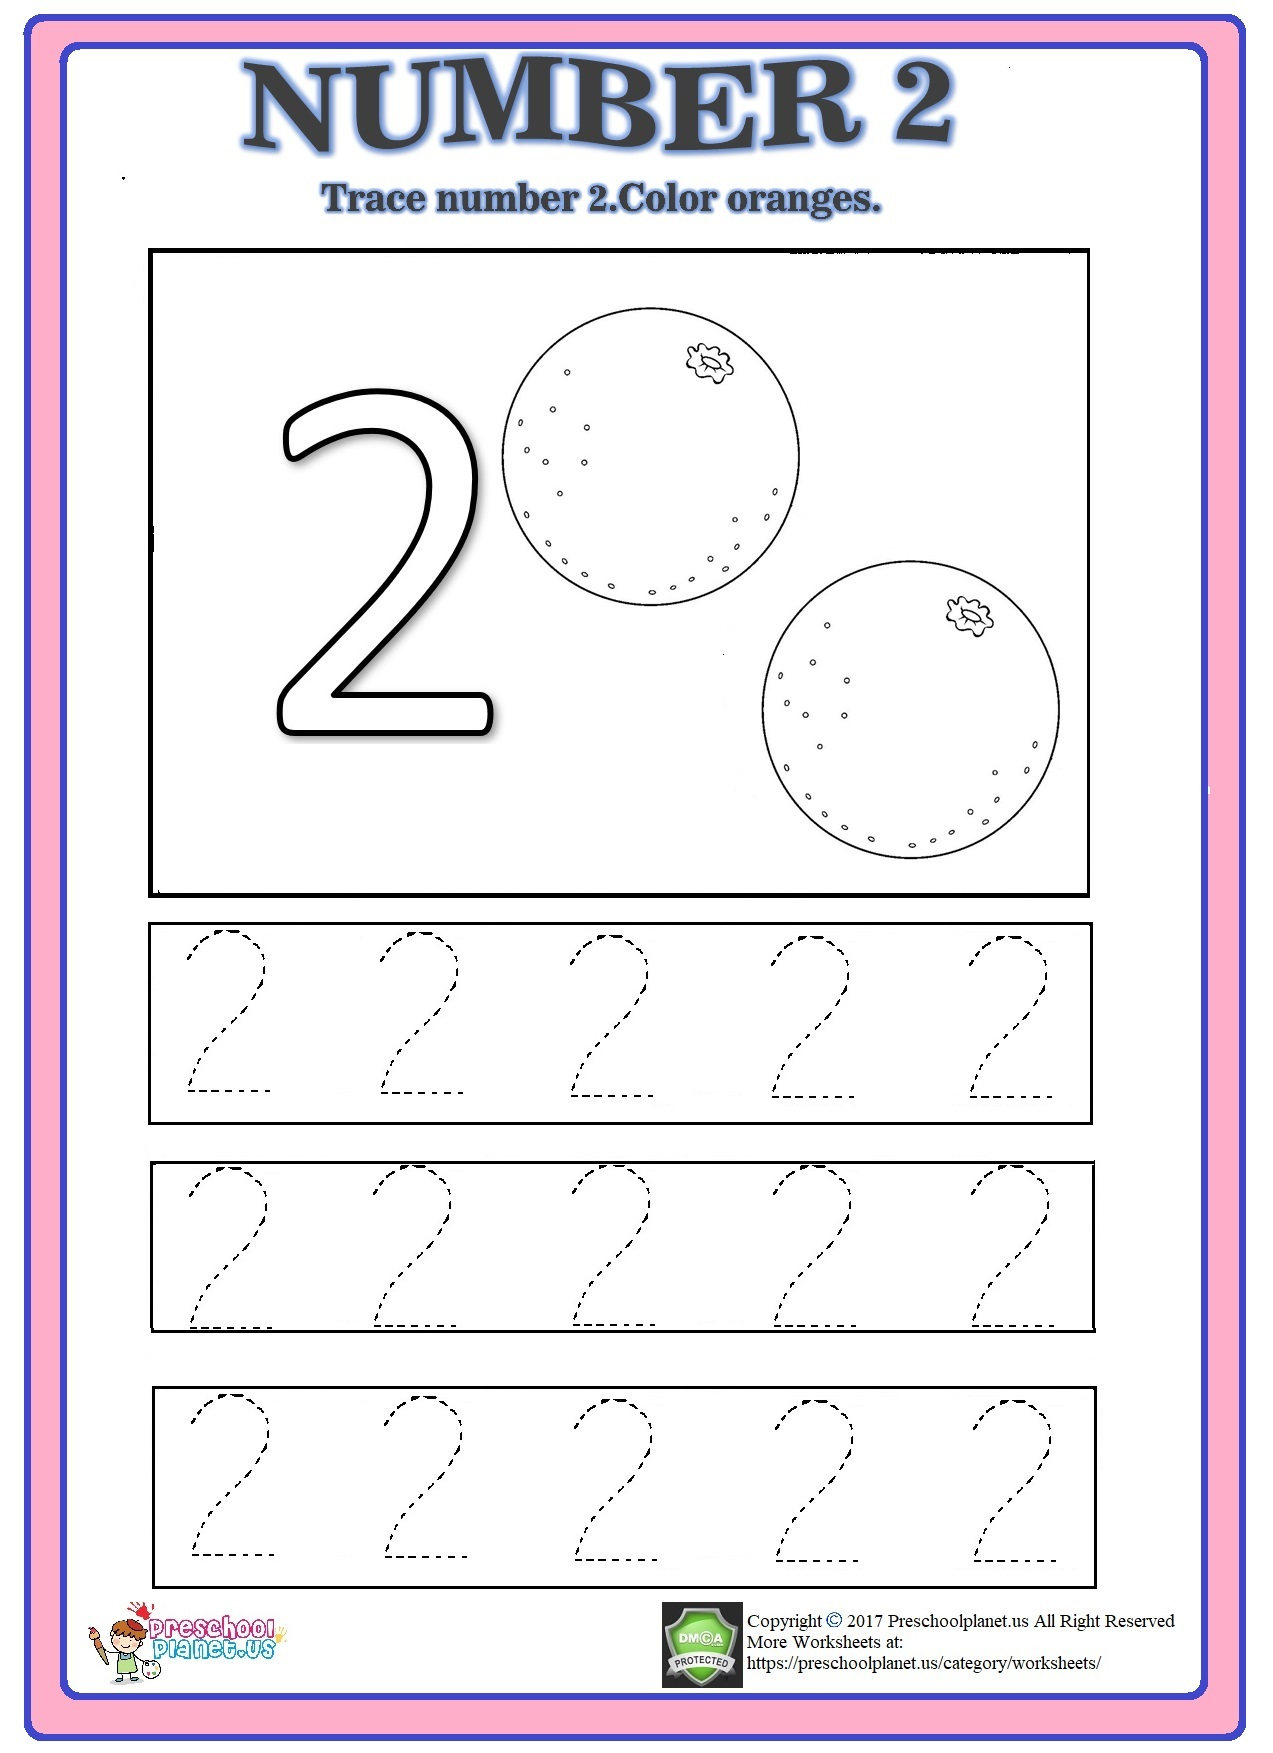 Number 2 Trace Worksheet – Preschoolplanet